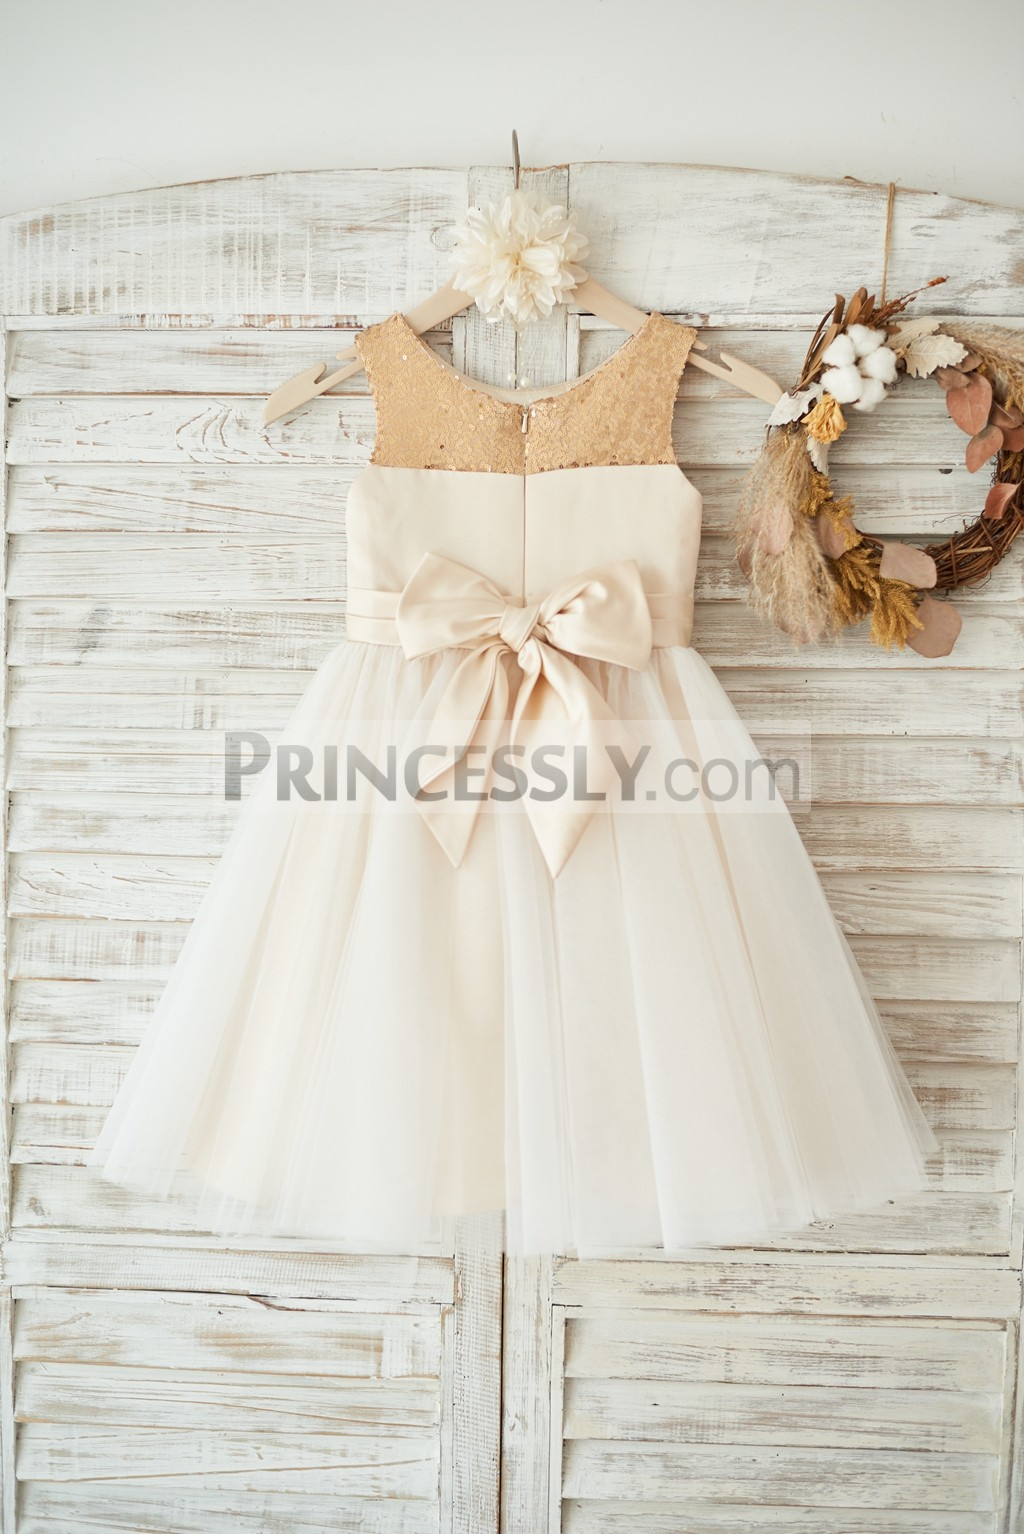 Champagne sequins satin ivory tulle wedding baby girl dress